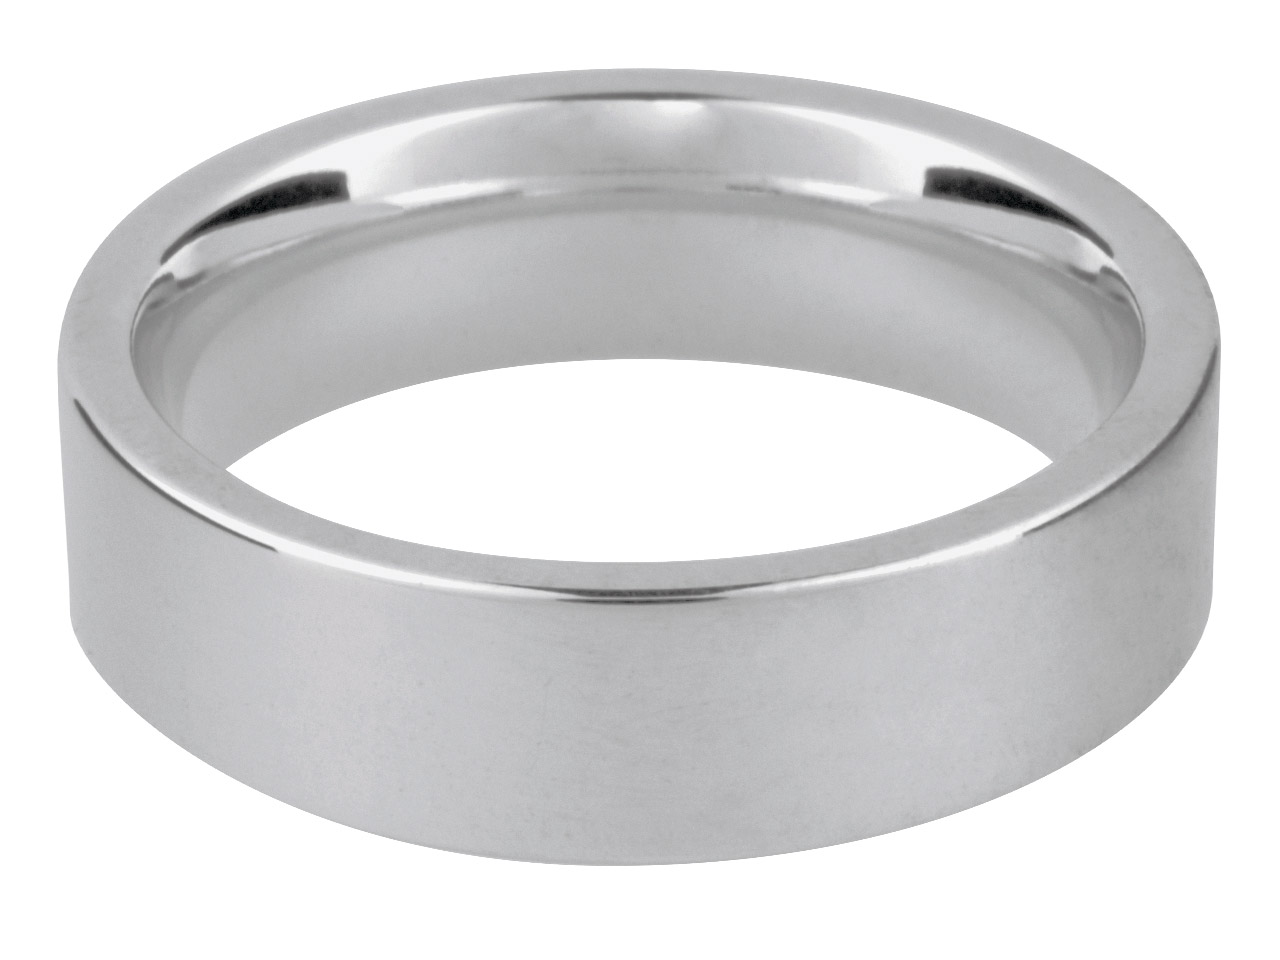 Palladium Easy Fit Wedding Ring    8.0mm Z 10.9gms Medium Weight      Hallmarked Wall Thickness 1.87mm